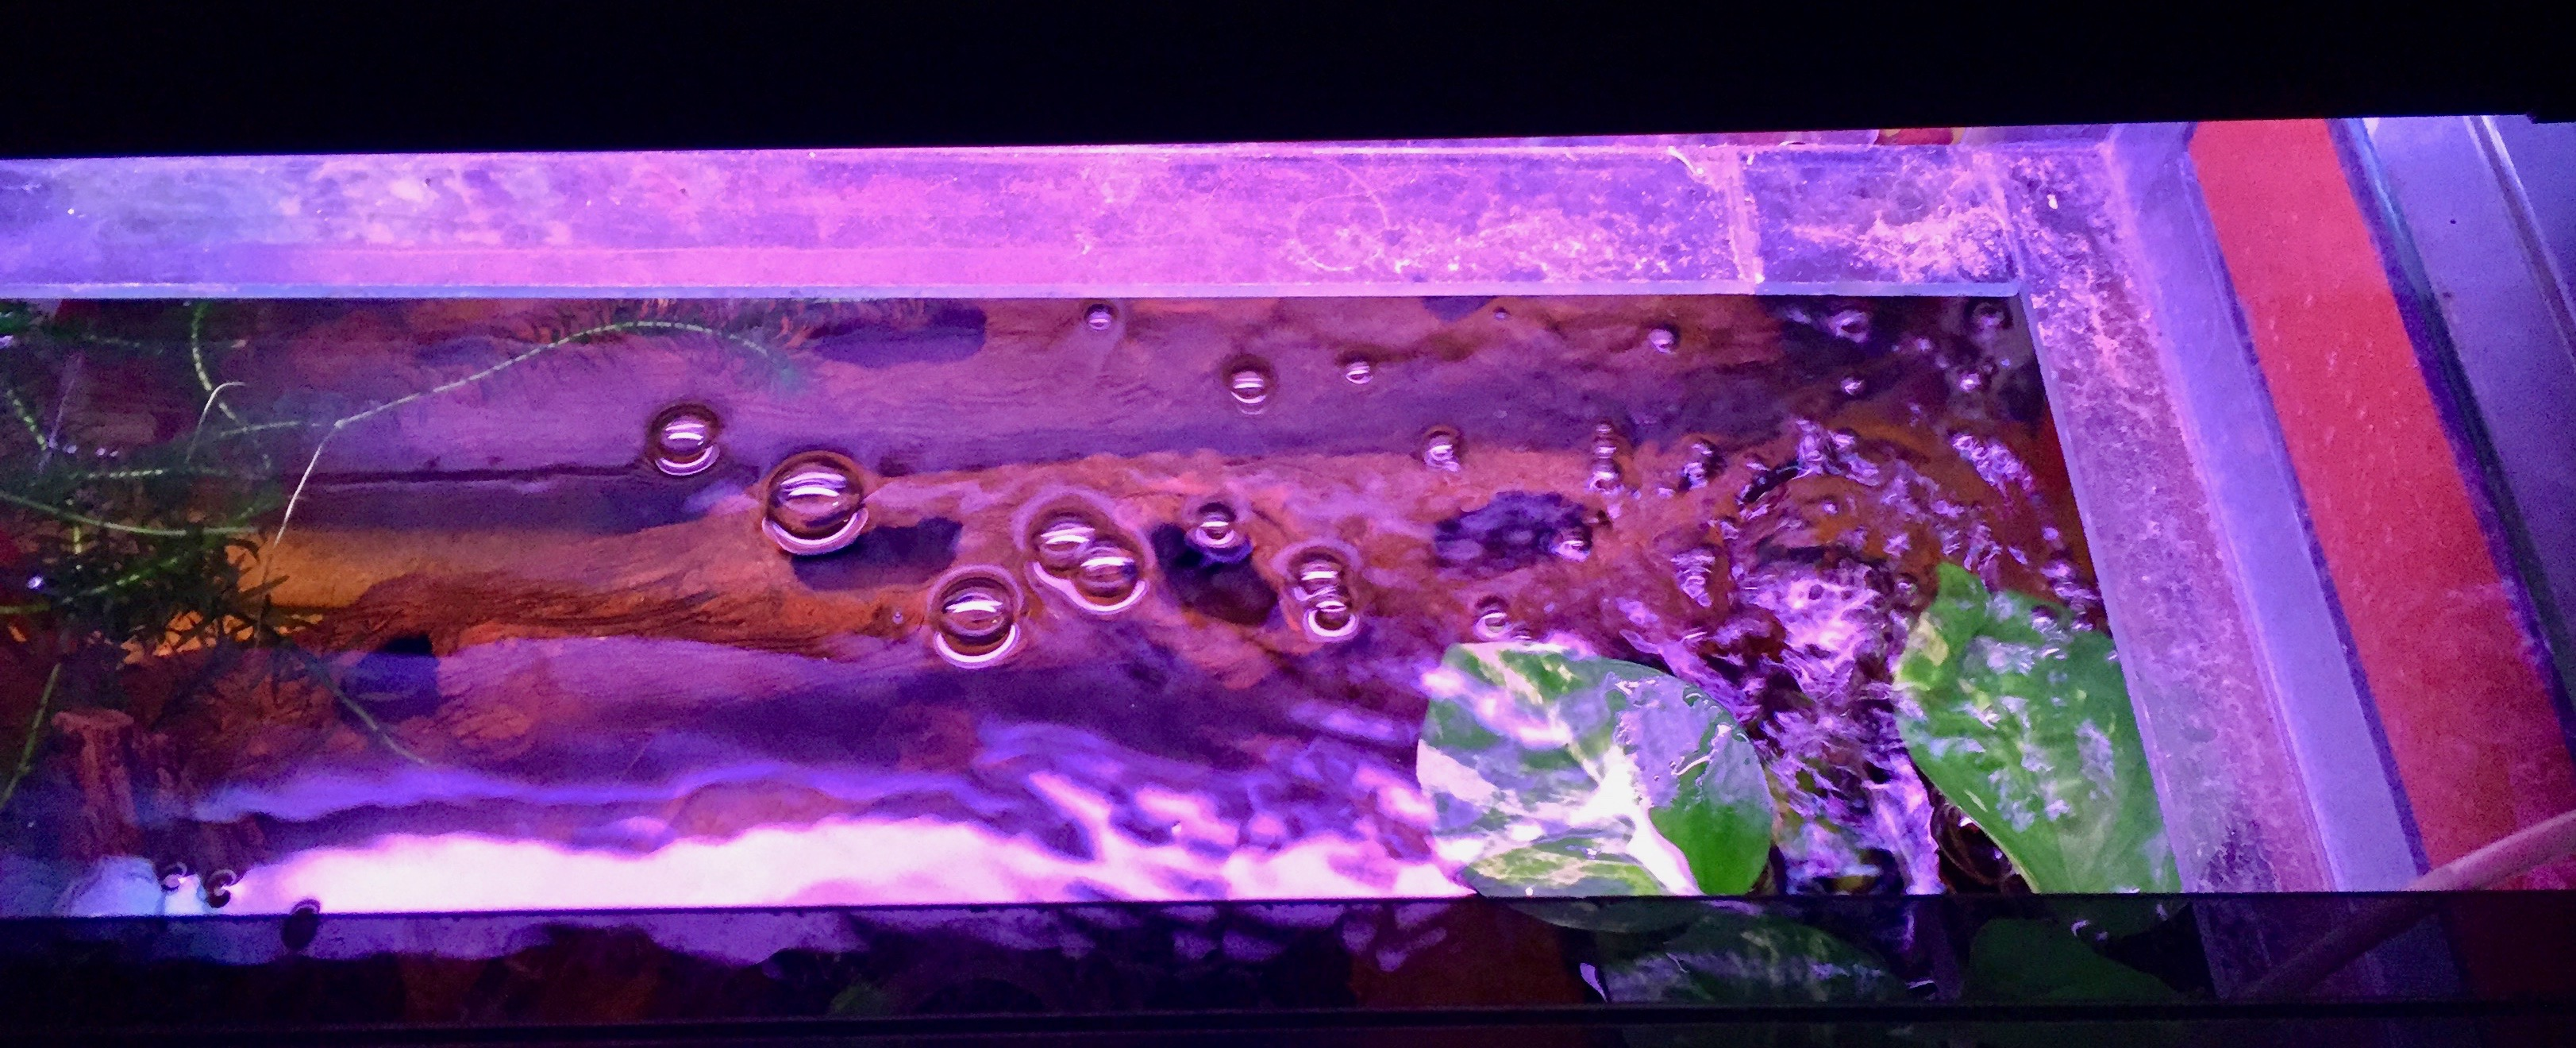 Water bubbles and plants in a tank